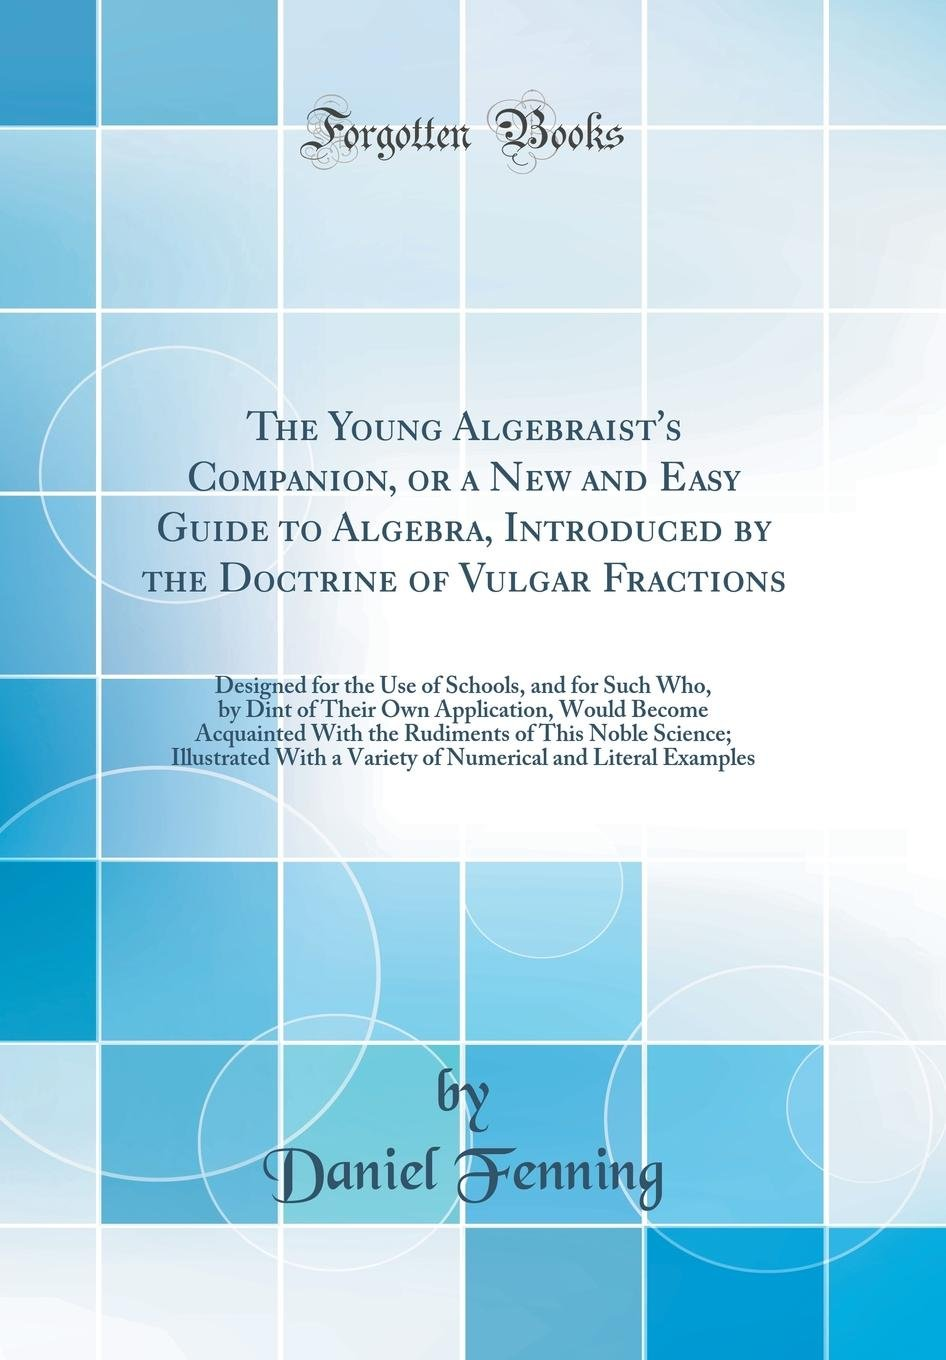 The Young Algebraist's Companion, or a New and Easy Guide to Algebra, Introduced by the Doctrine of Vulgar Fractions: Designed for the Use of Schools, ... Acquainted With the Rudiments of This N PDF